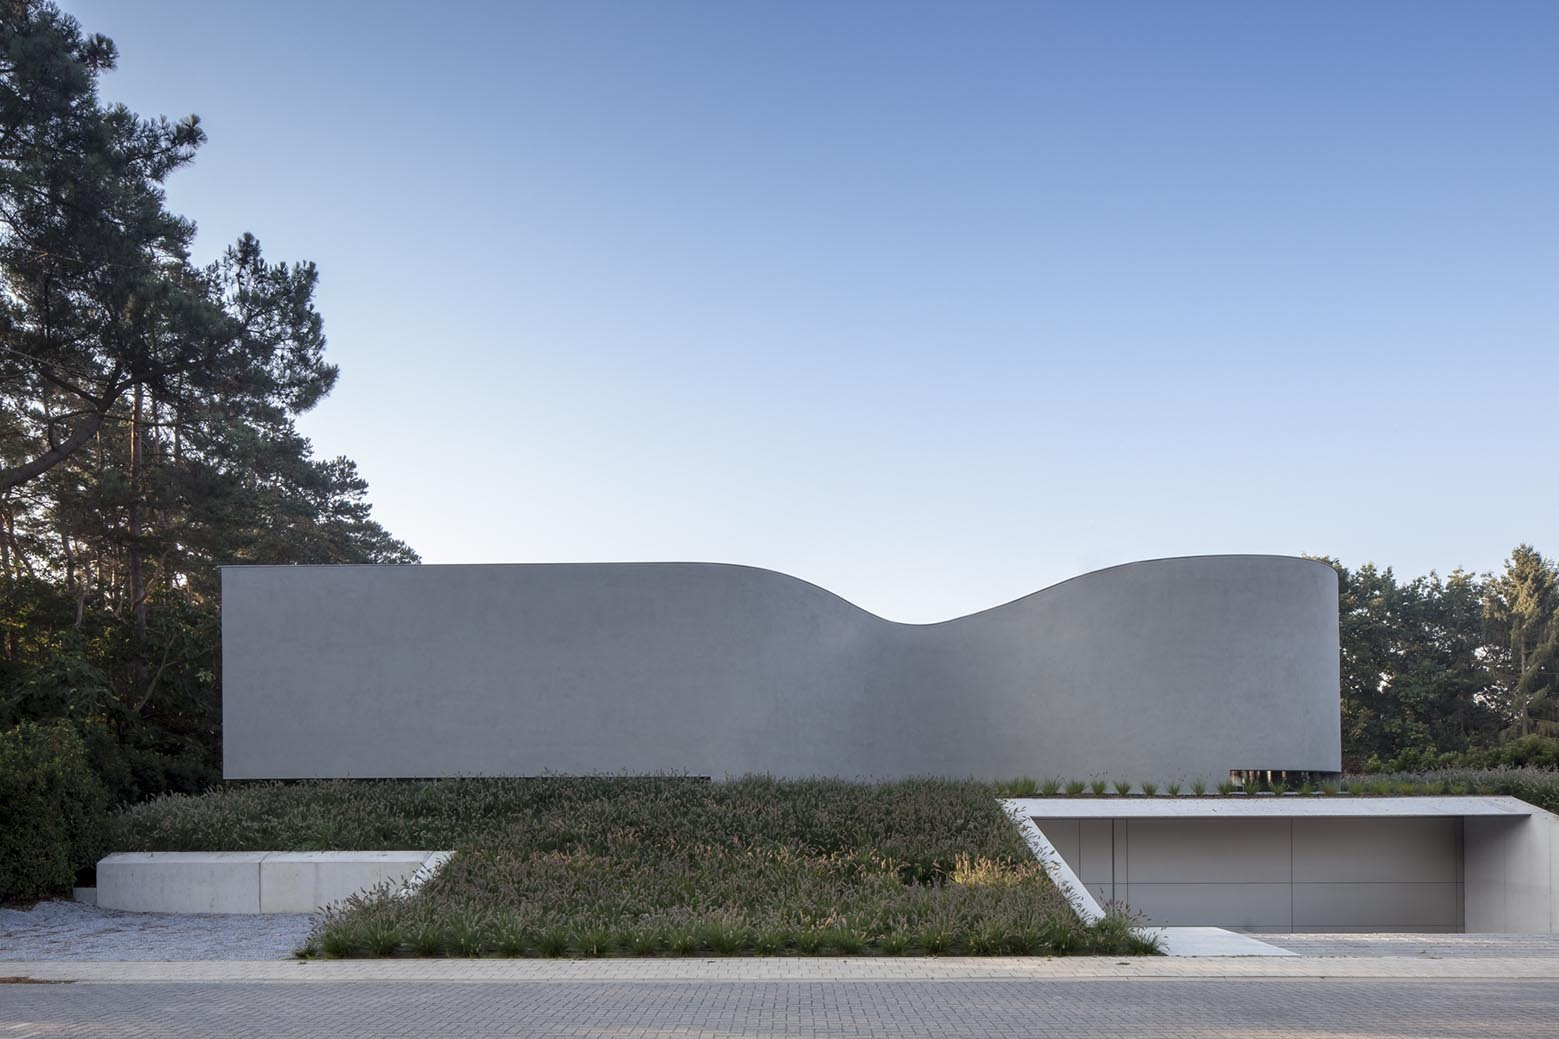 VILLA MQ / Office O architects